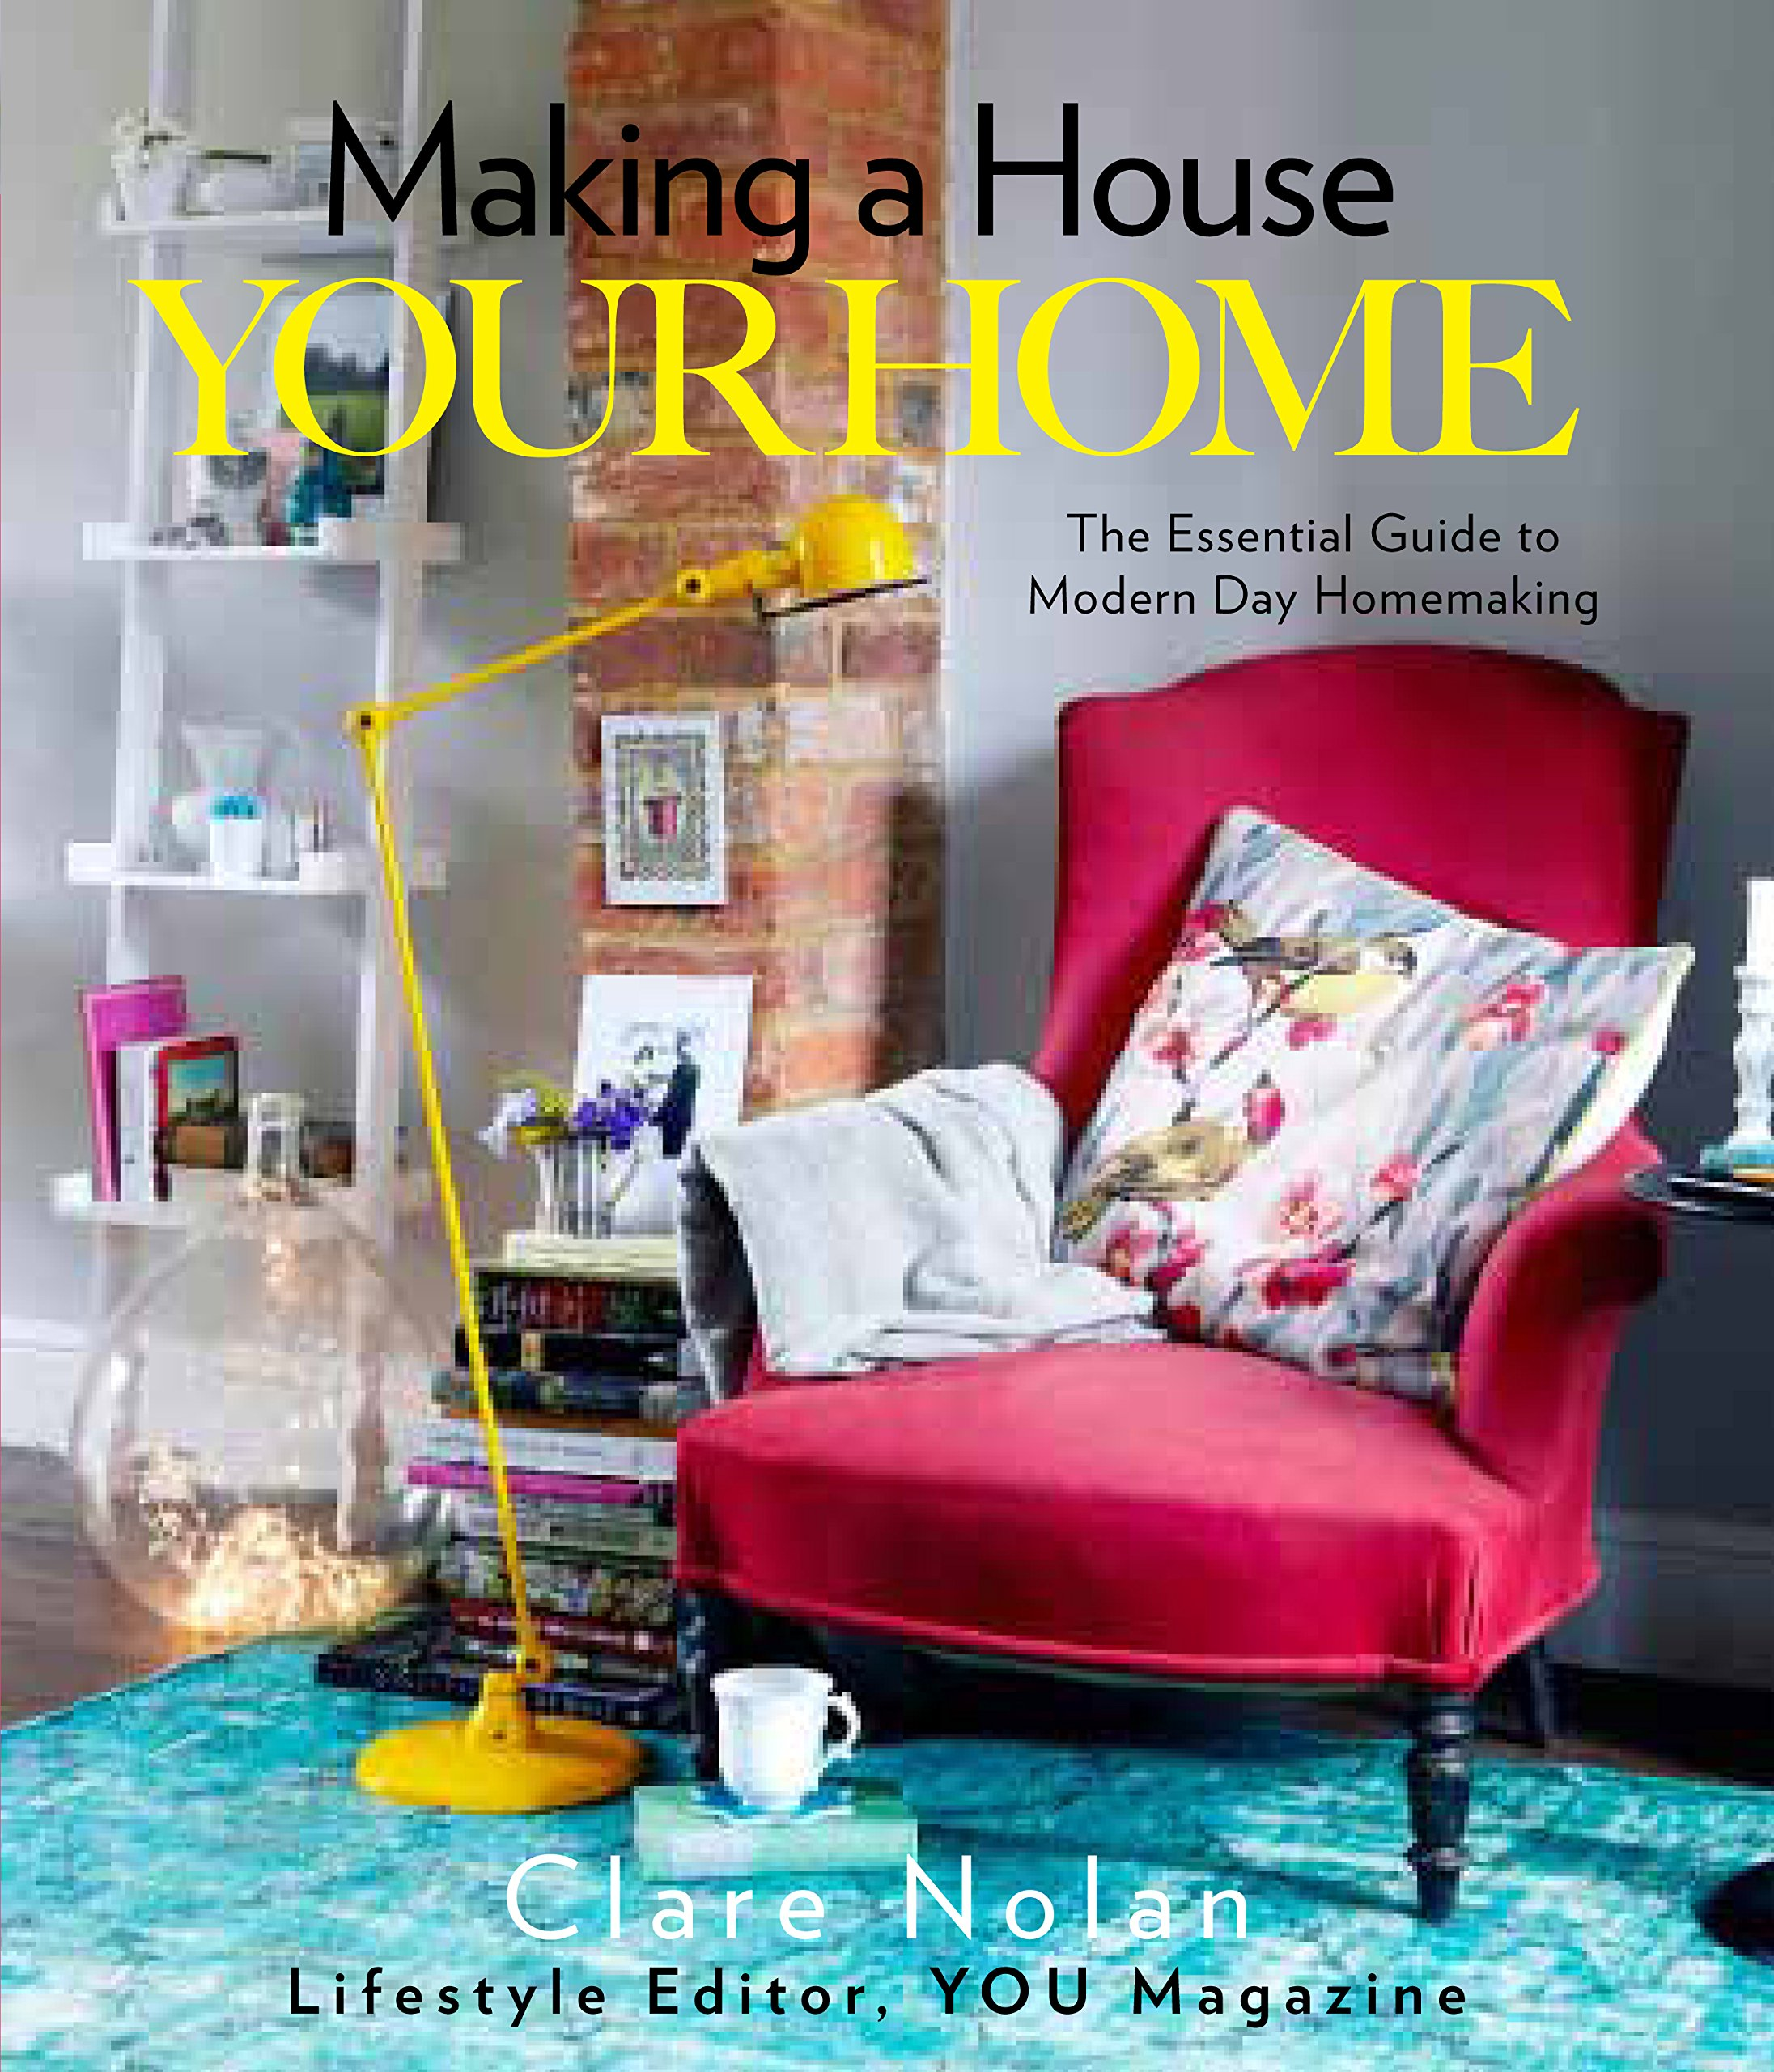 Making a House Your Home: The Essential Guide to Modern Day Homemaking:  Amazon.co.uk: Clare Nolan: 9780857830623: Books